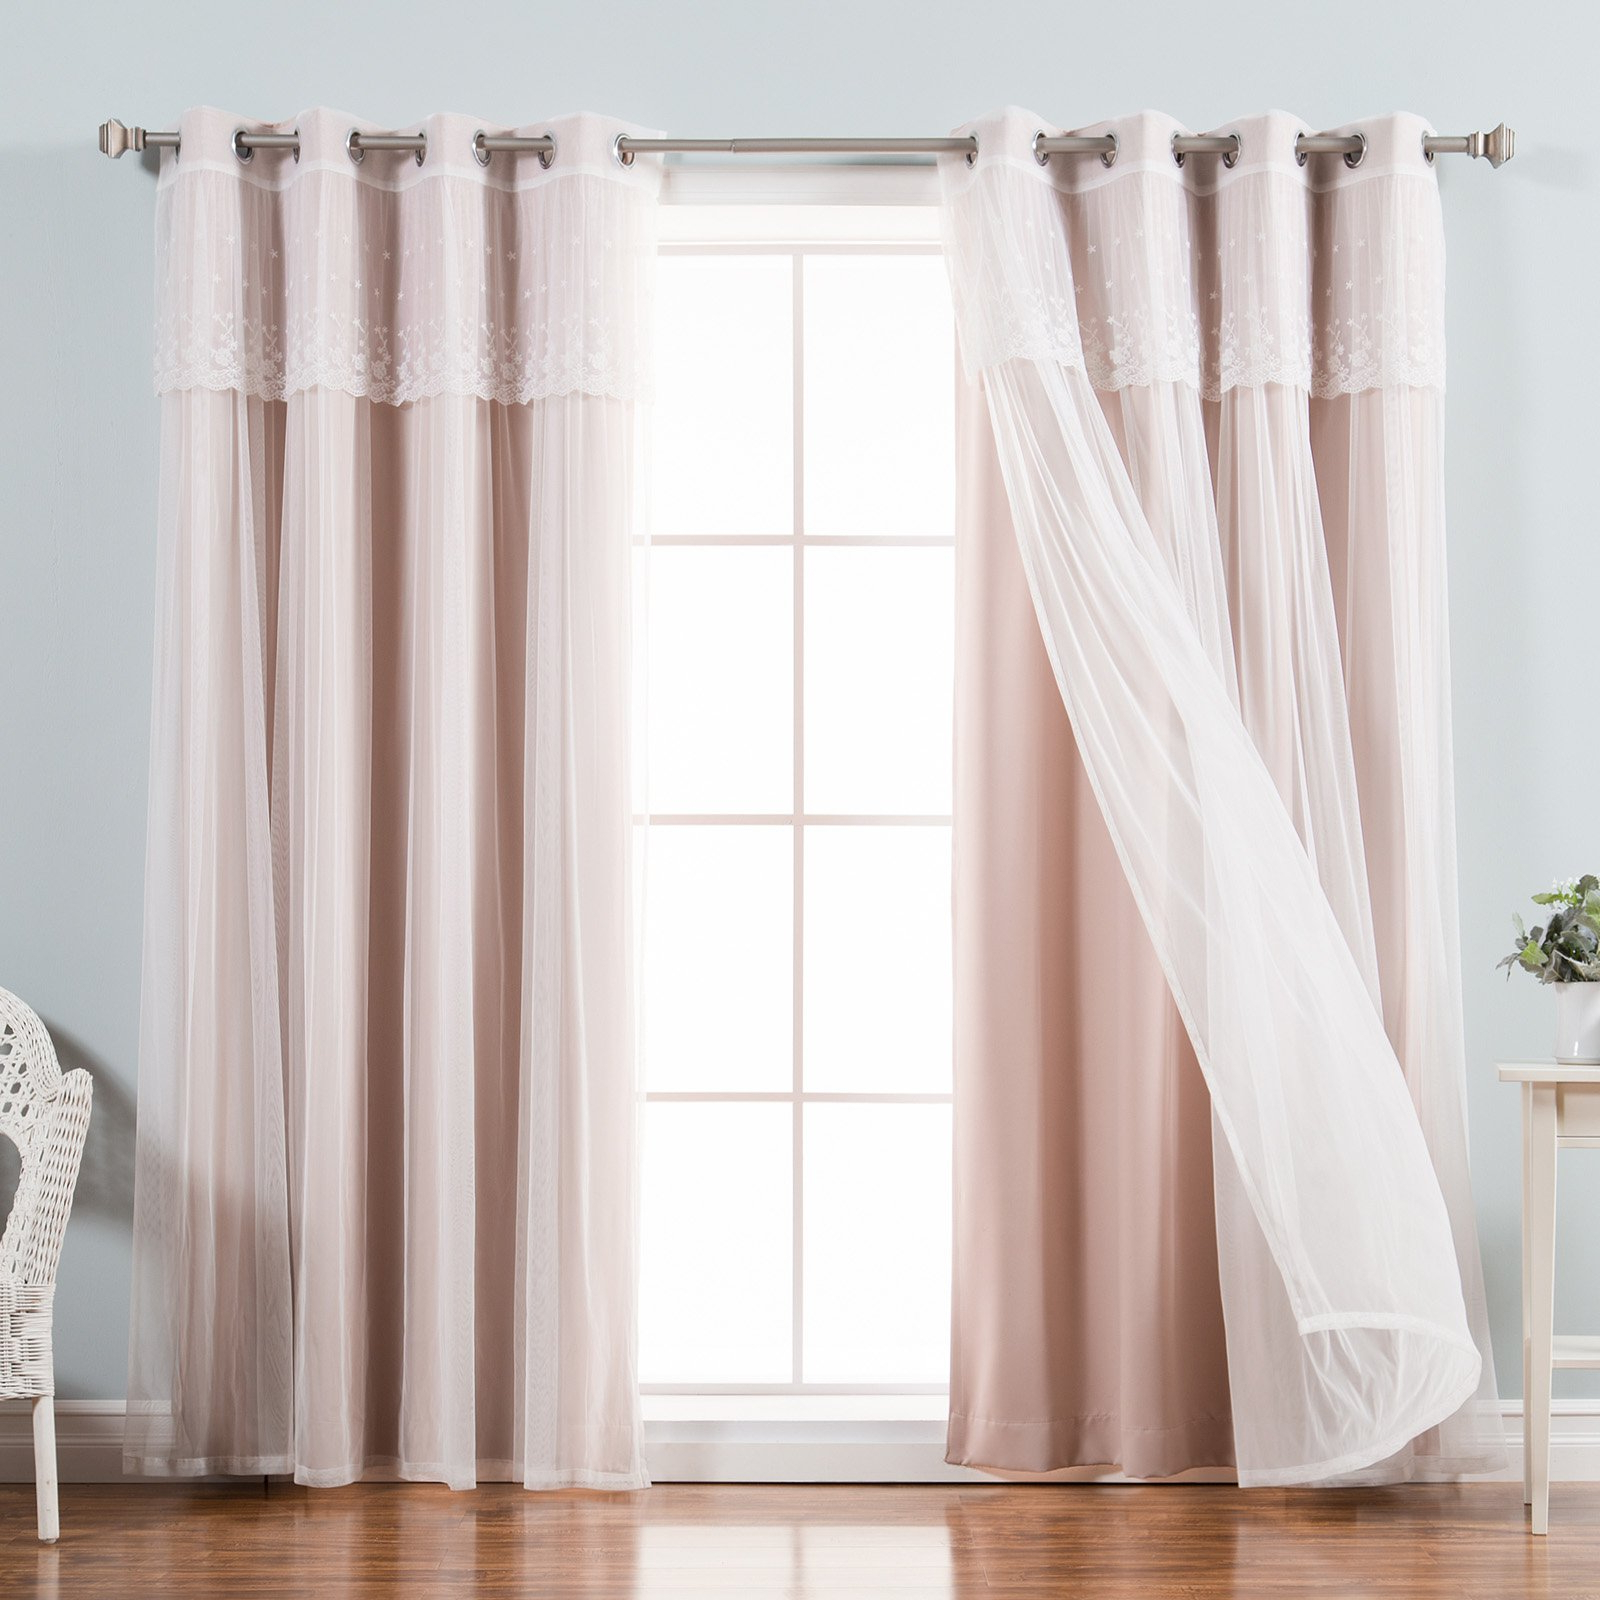 Current Aurora Home Mix & Match Tulle Sheer With Attached Valance And Blackout 4 Piece Curtain Panel Pair Within Tulle Sheer With Attached Valance And Blackout 4 Piece Curtain Panel Pairs (View 12 of 20)